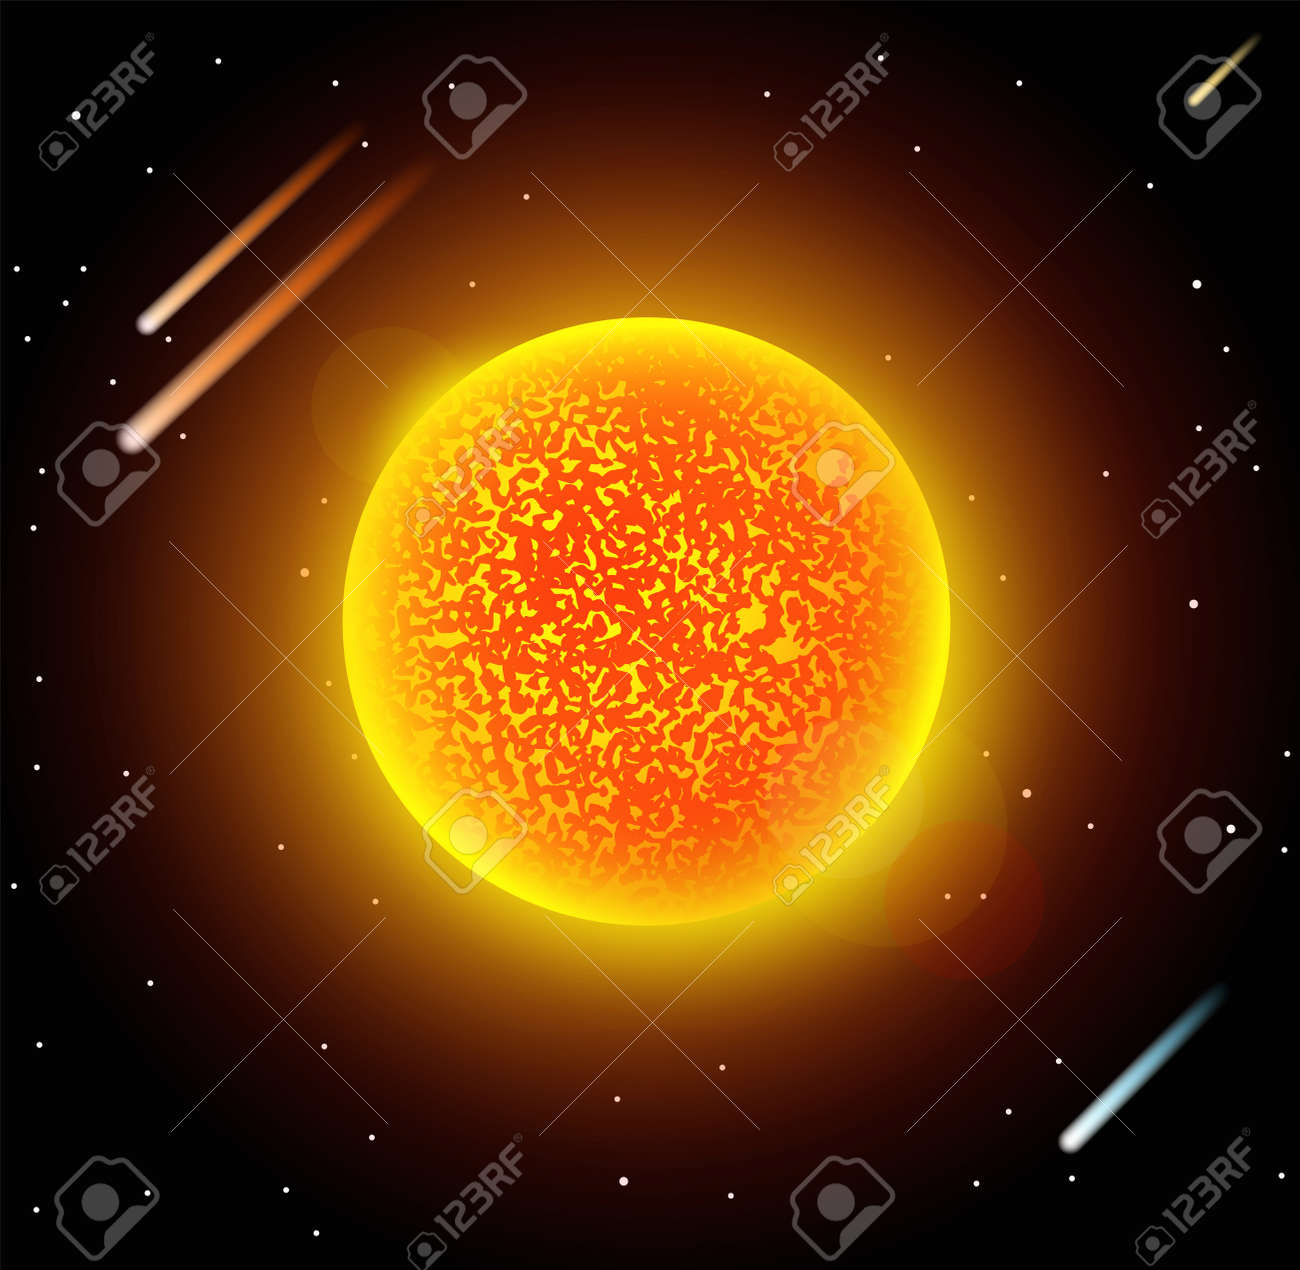 Sun star planet 3d vector illustration globe sun star texture sun star planet 3d vector illustration globe sun star texture map globe vector sun gumiabroncs Images